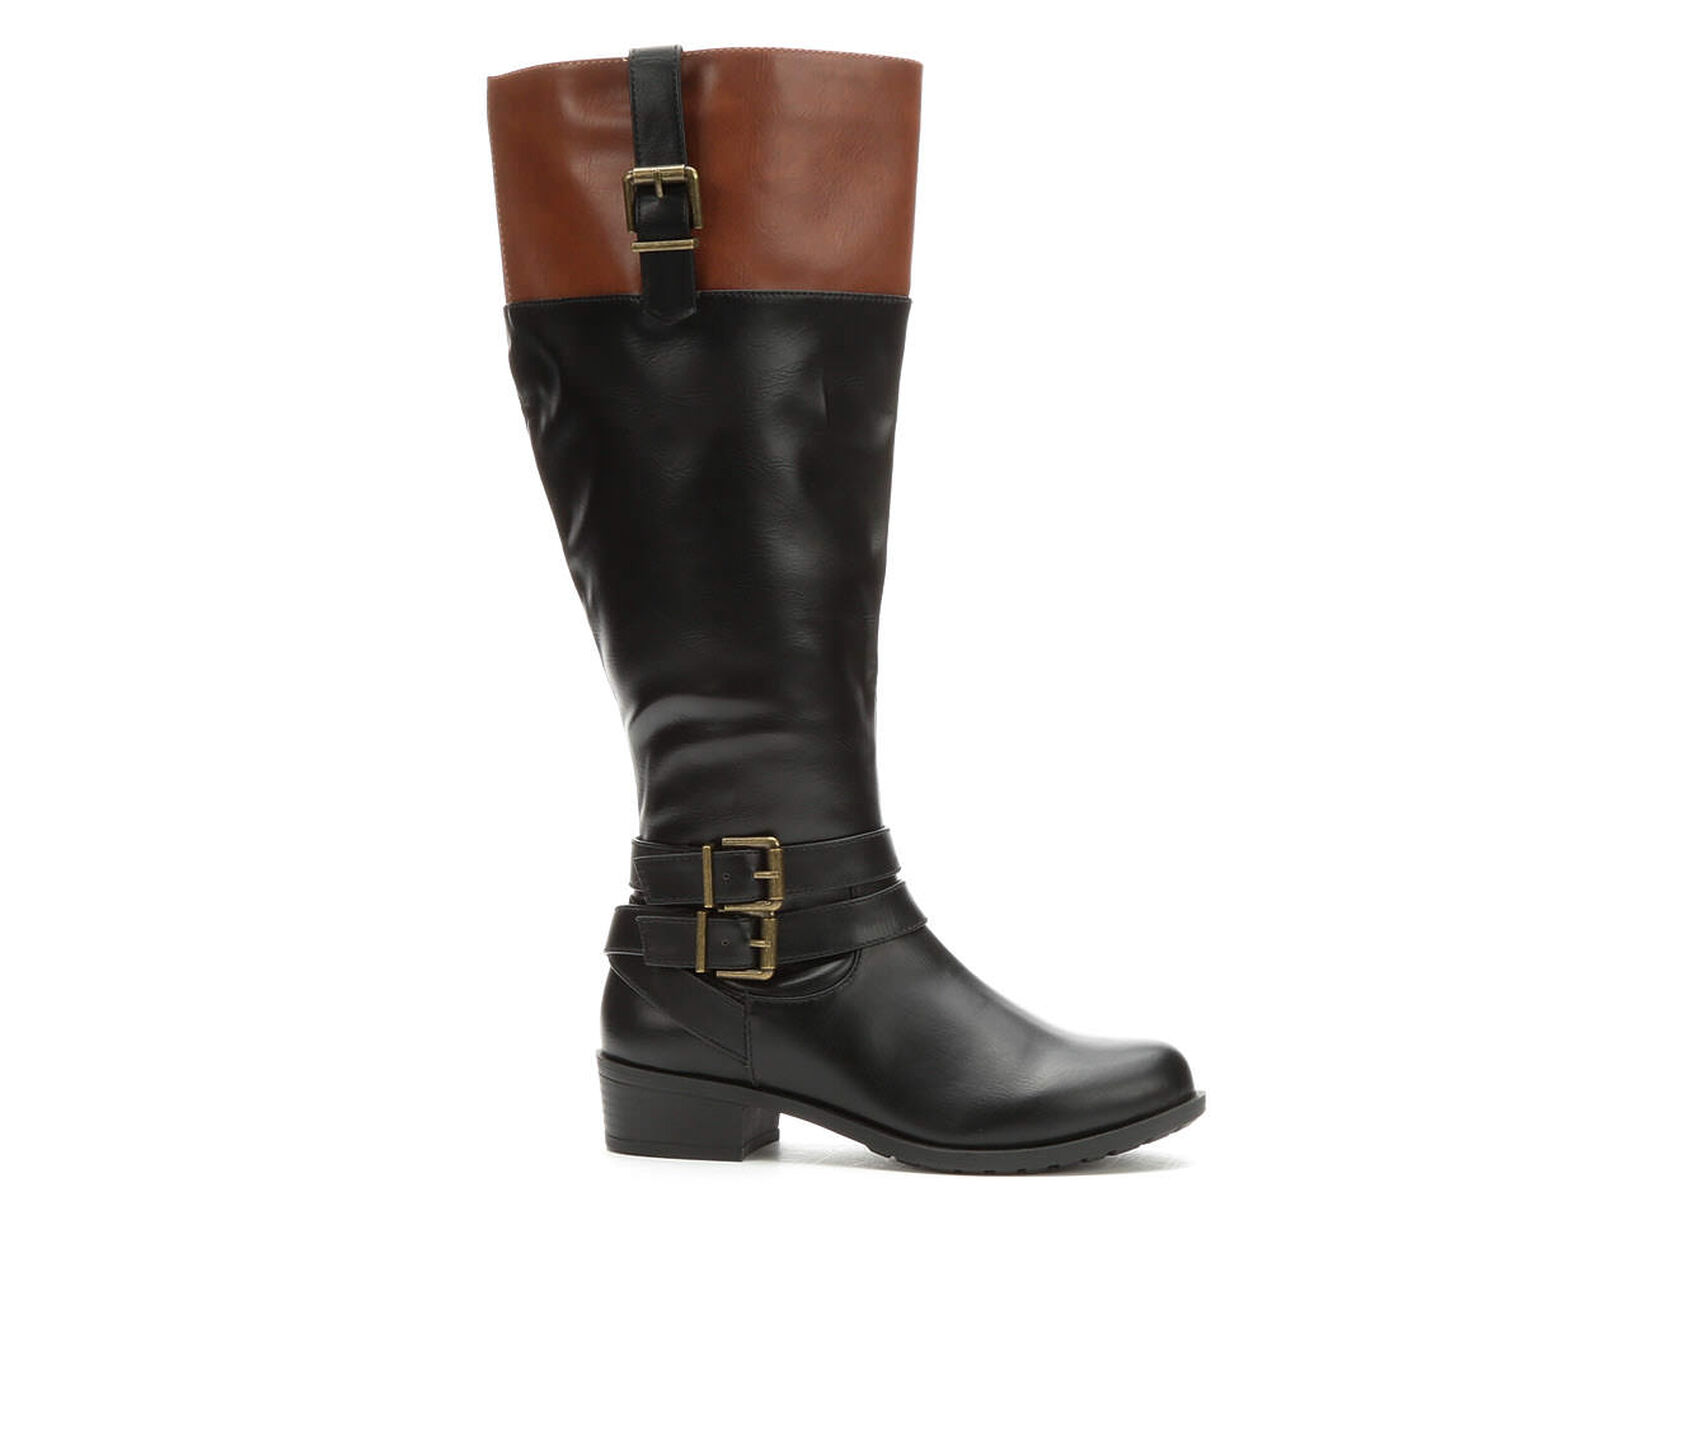 37a5d82f1a1b ... Solanz Grammercy Wide Width Wide Calf Riding Boots. Previous